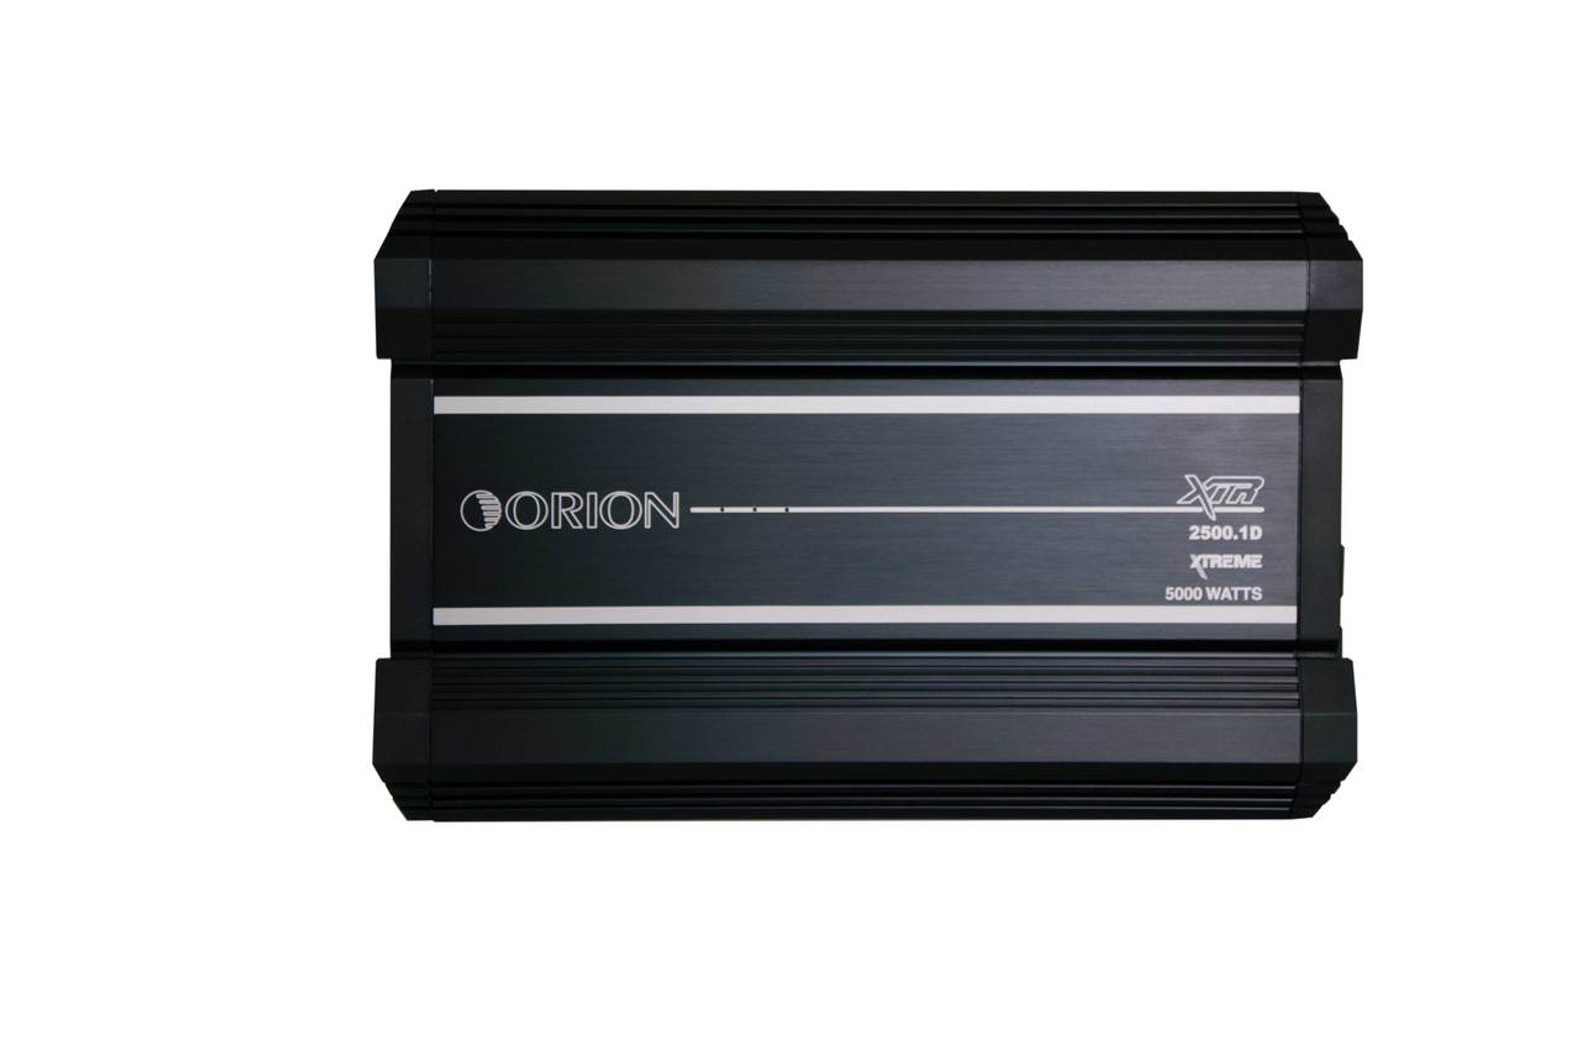 small resolution of orion xtr xtr2500 1dz class d amplifier 2500 watts rms 1 ohm ssa orion amplifier wiring diagram source orion car audio